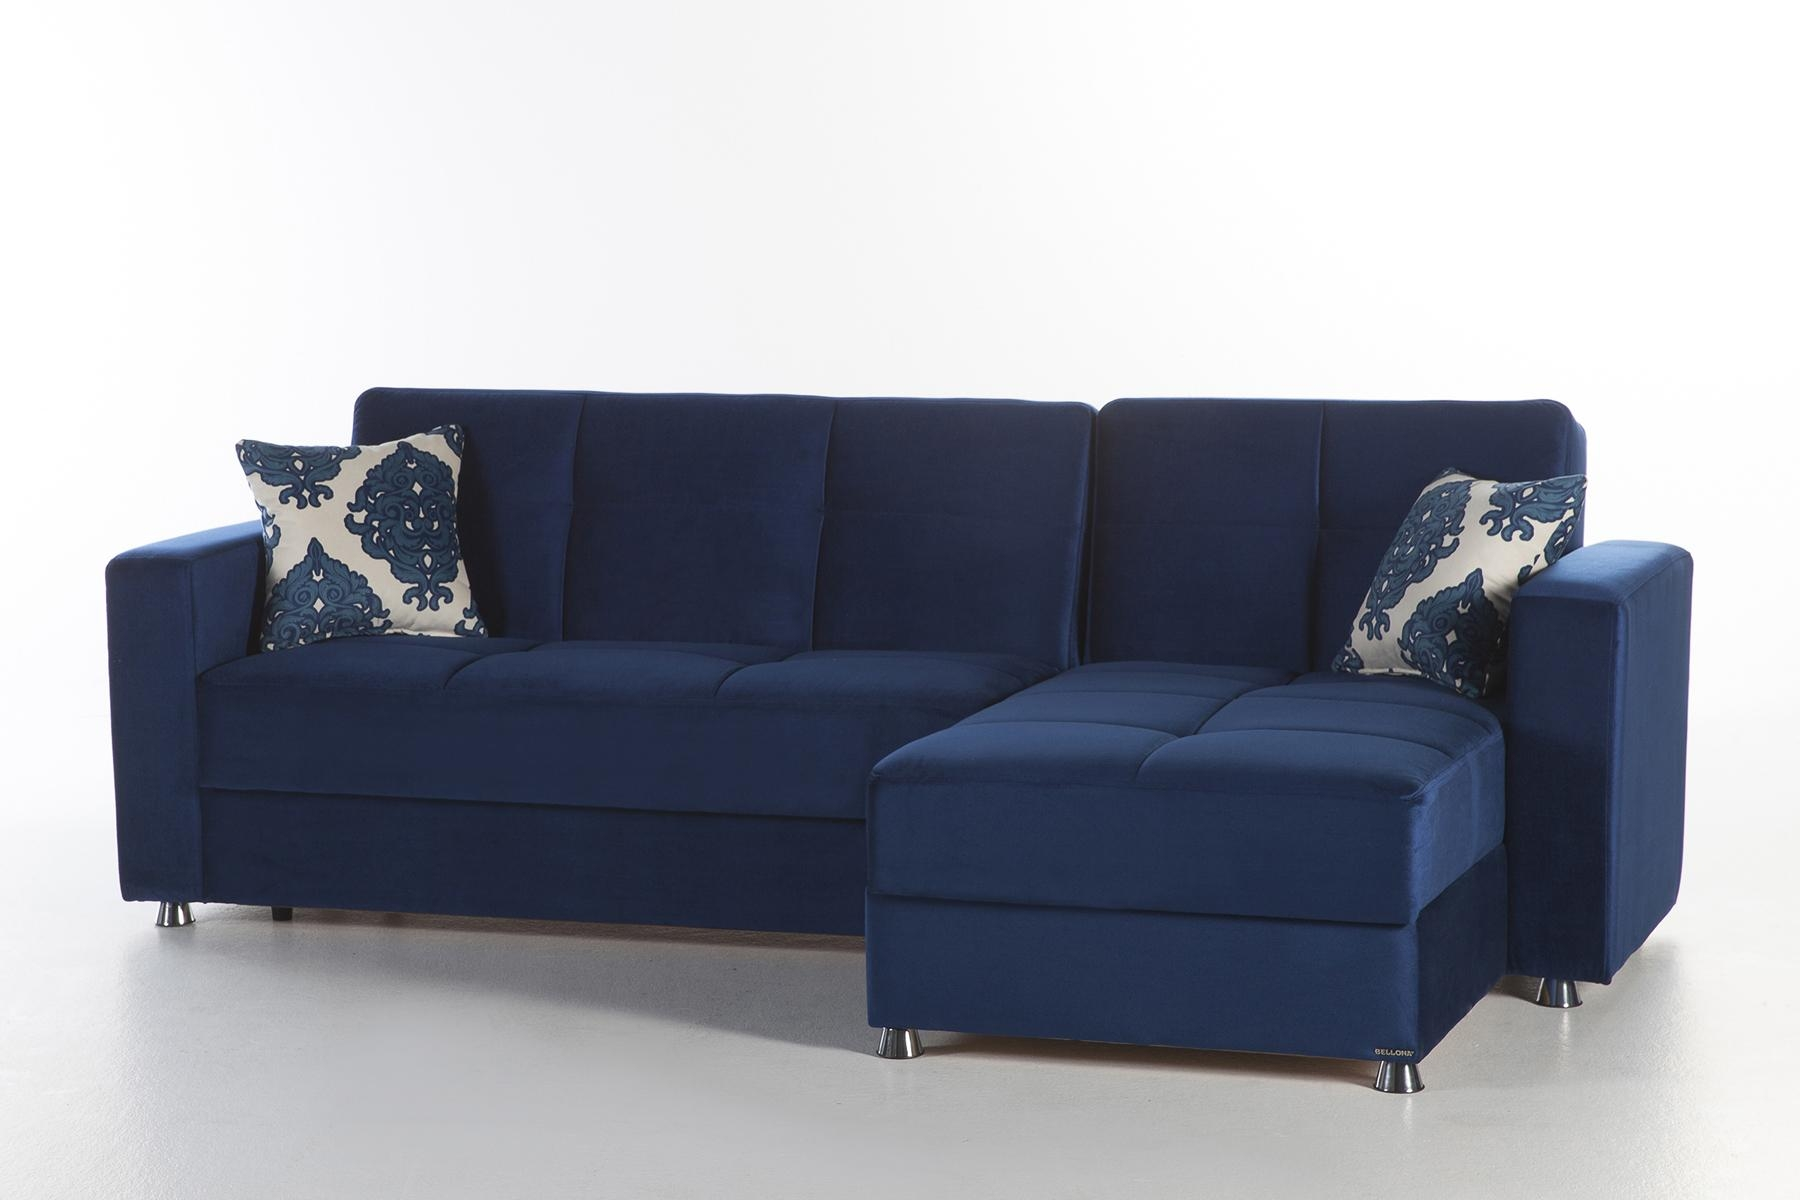 Elegant Roma Navy Sectional Sofasunset Within Elegant Sectional Sofa (Image 7 of 15)